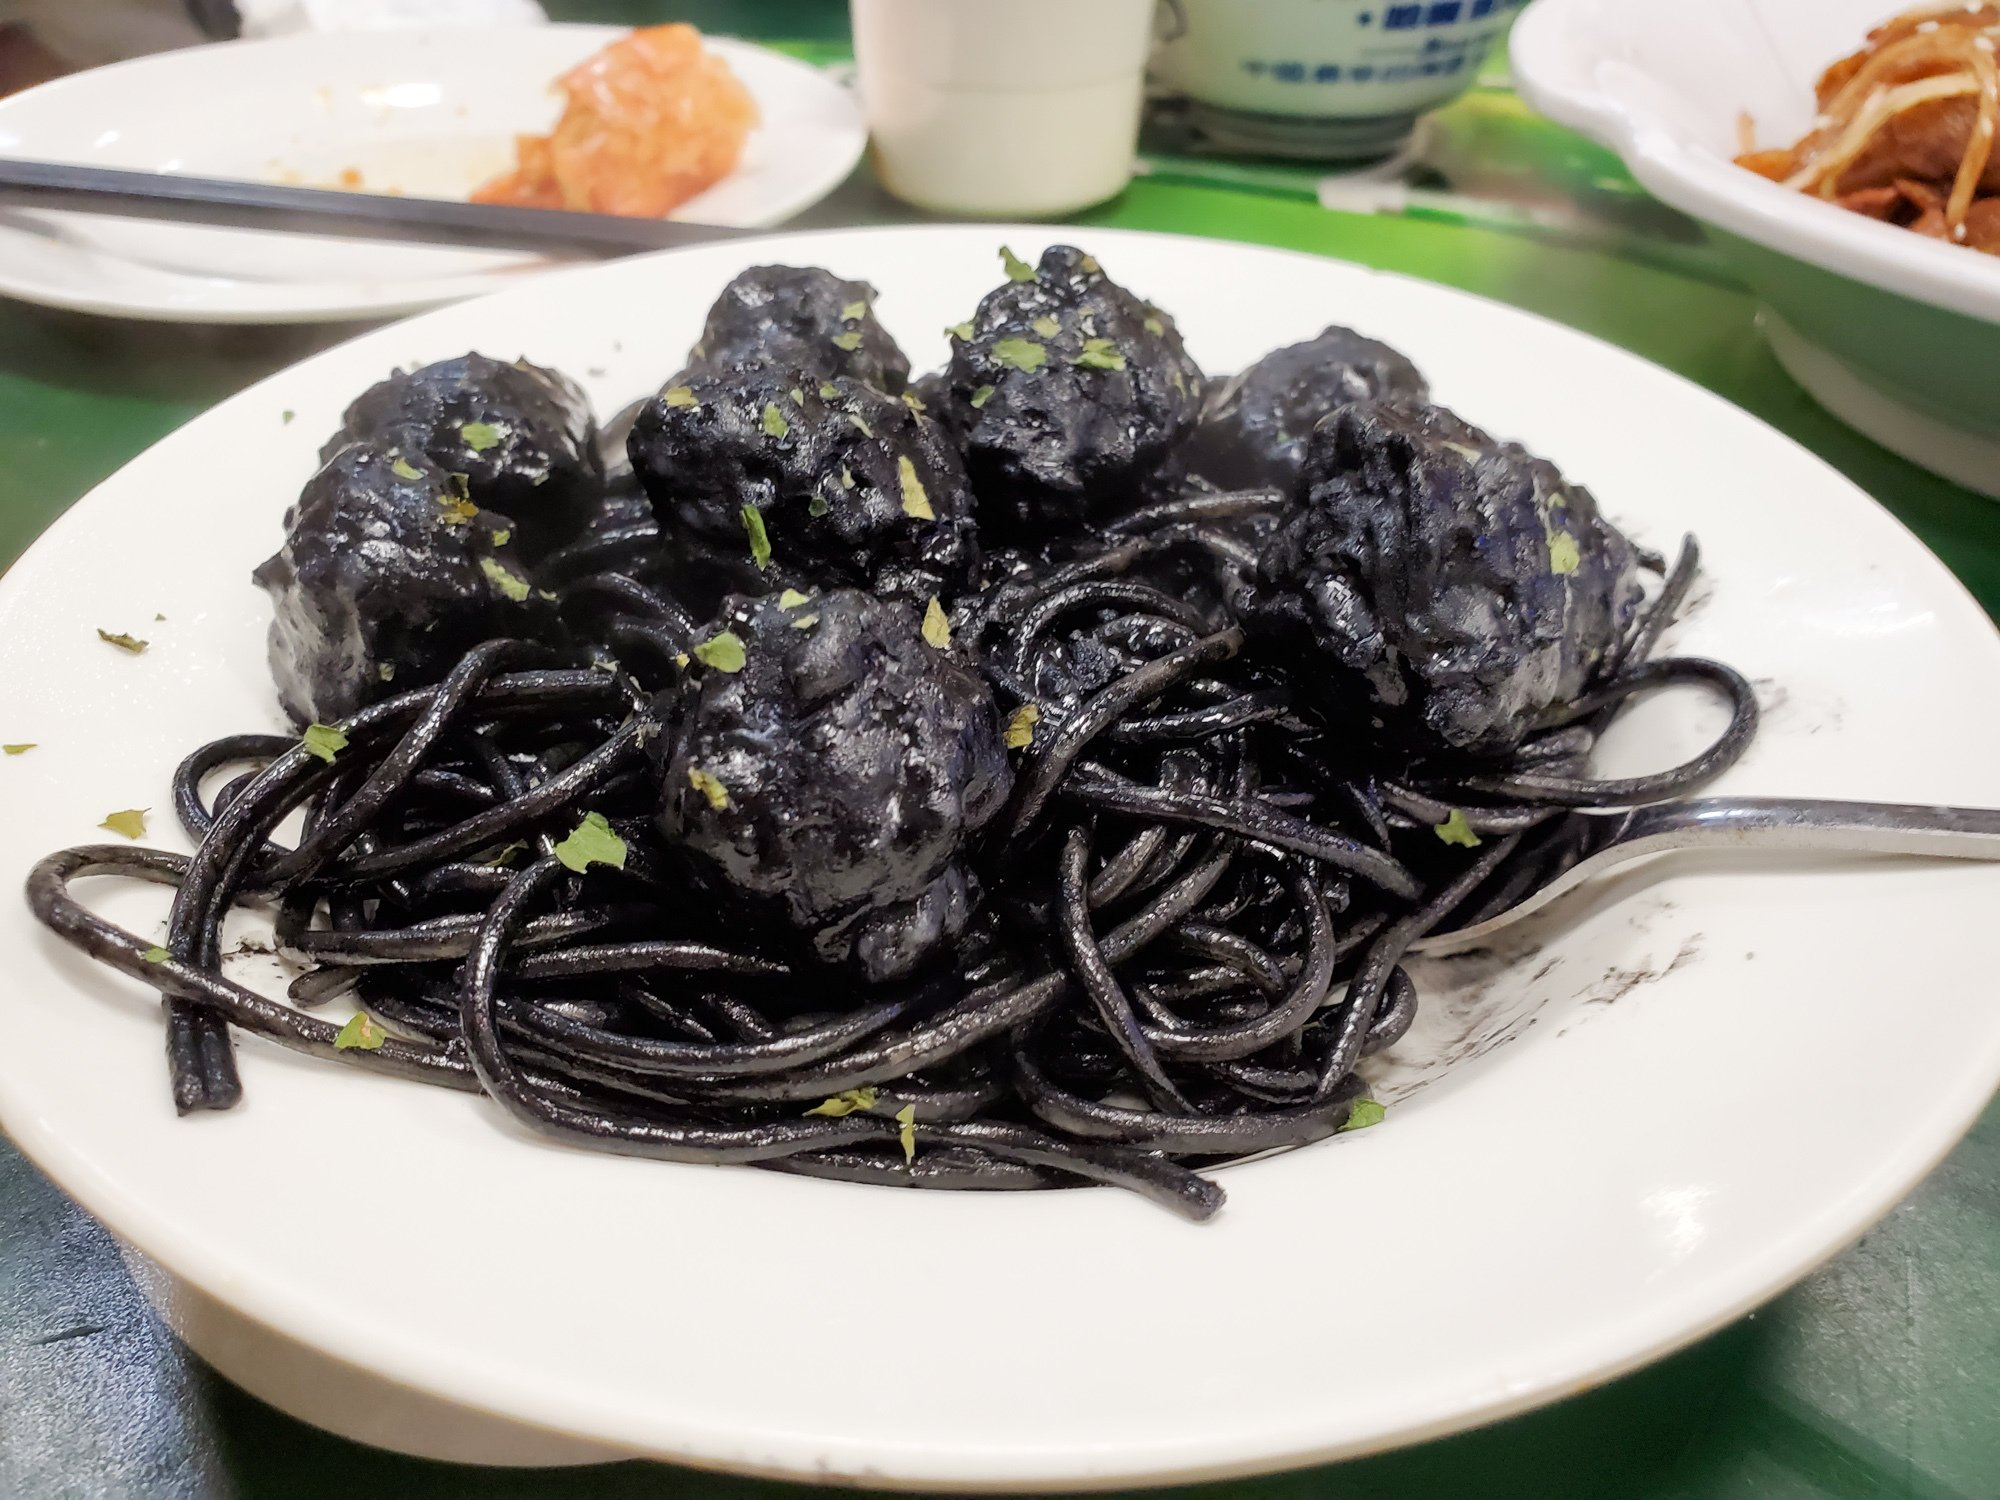 cuttlefish black squid ink spaghetti meatballs at tung po kitchen in hong kong